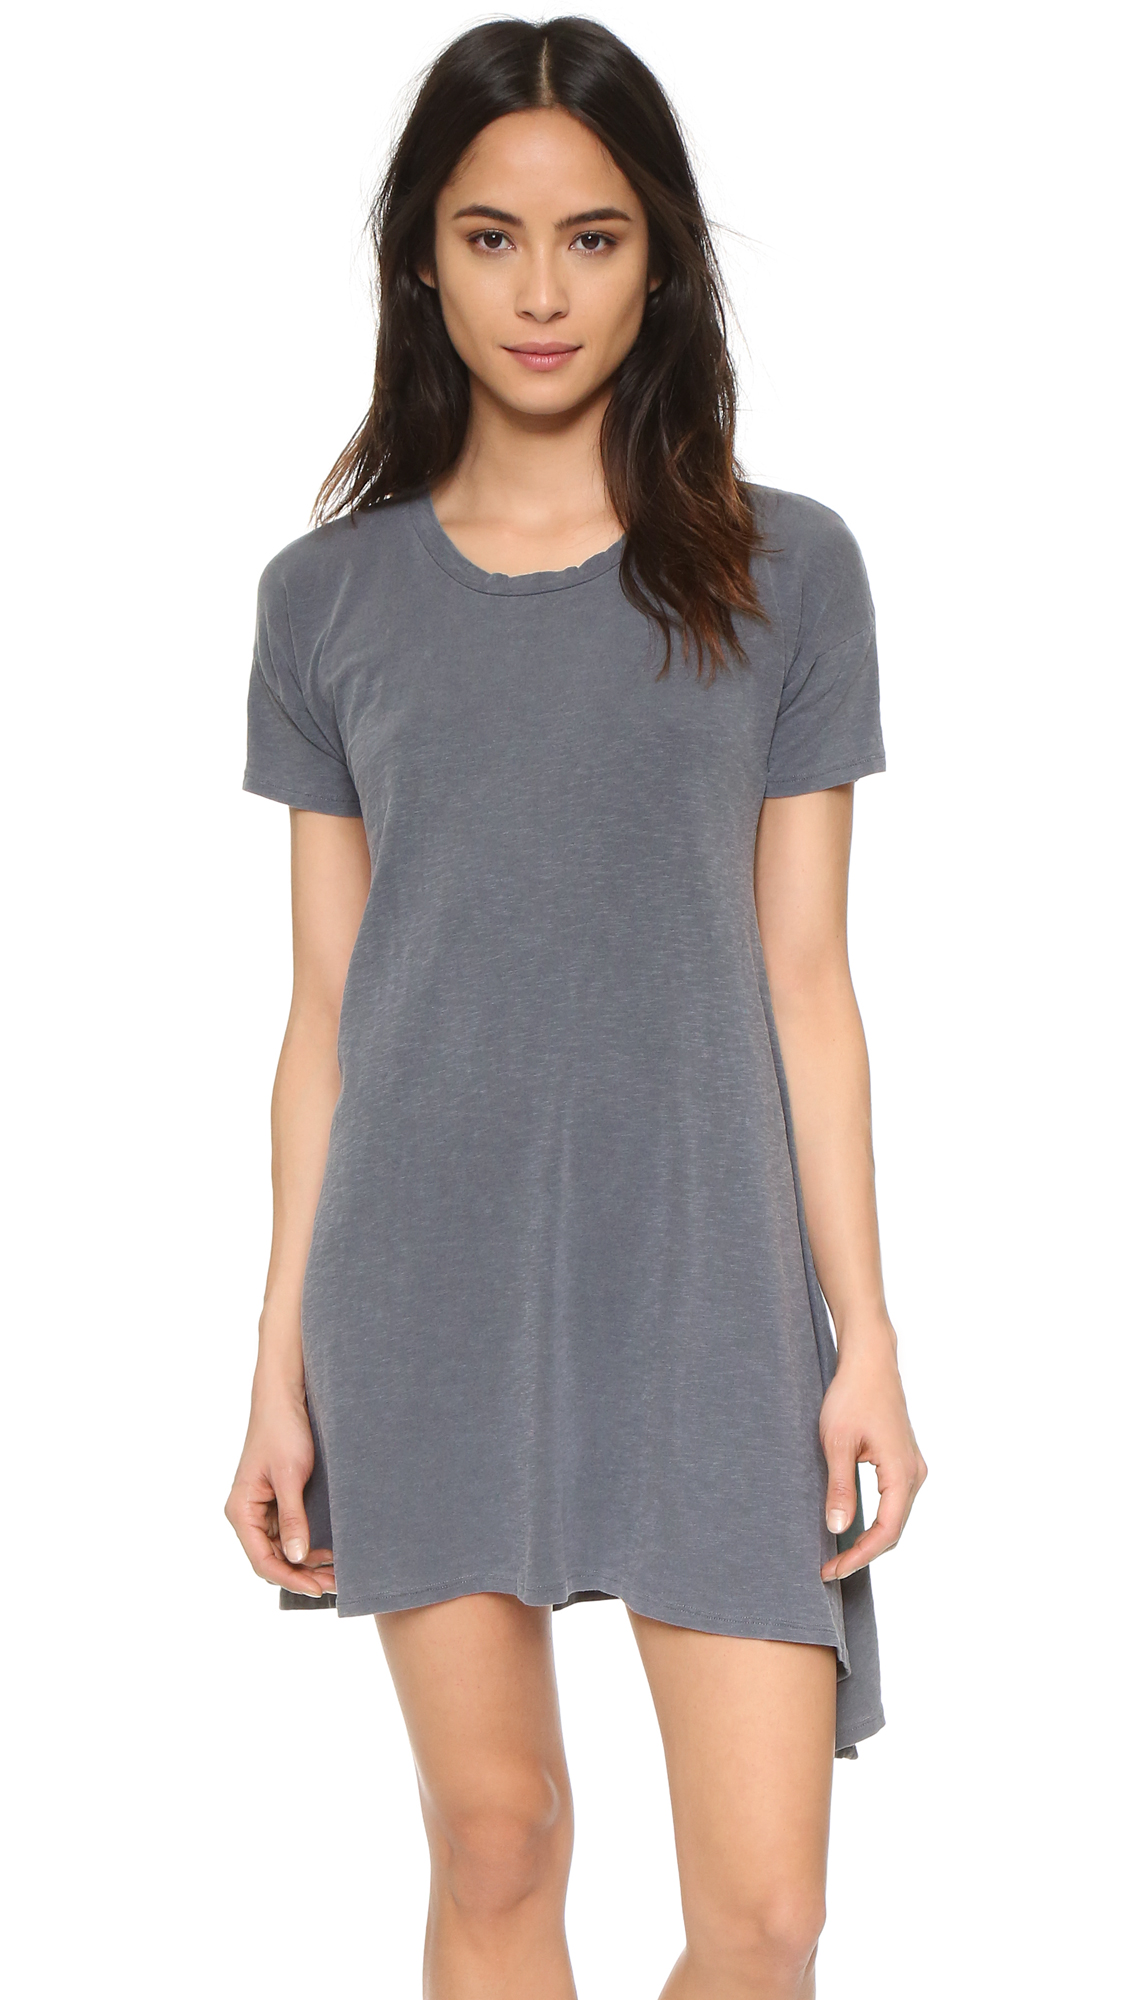 10 T-Shirt Dresses to Wear with a Leather Jacket - SUNDRY Asymmetrical Dress